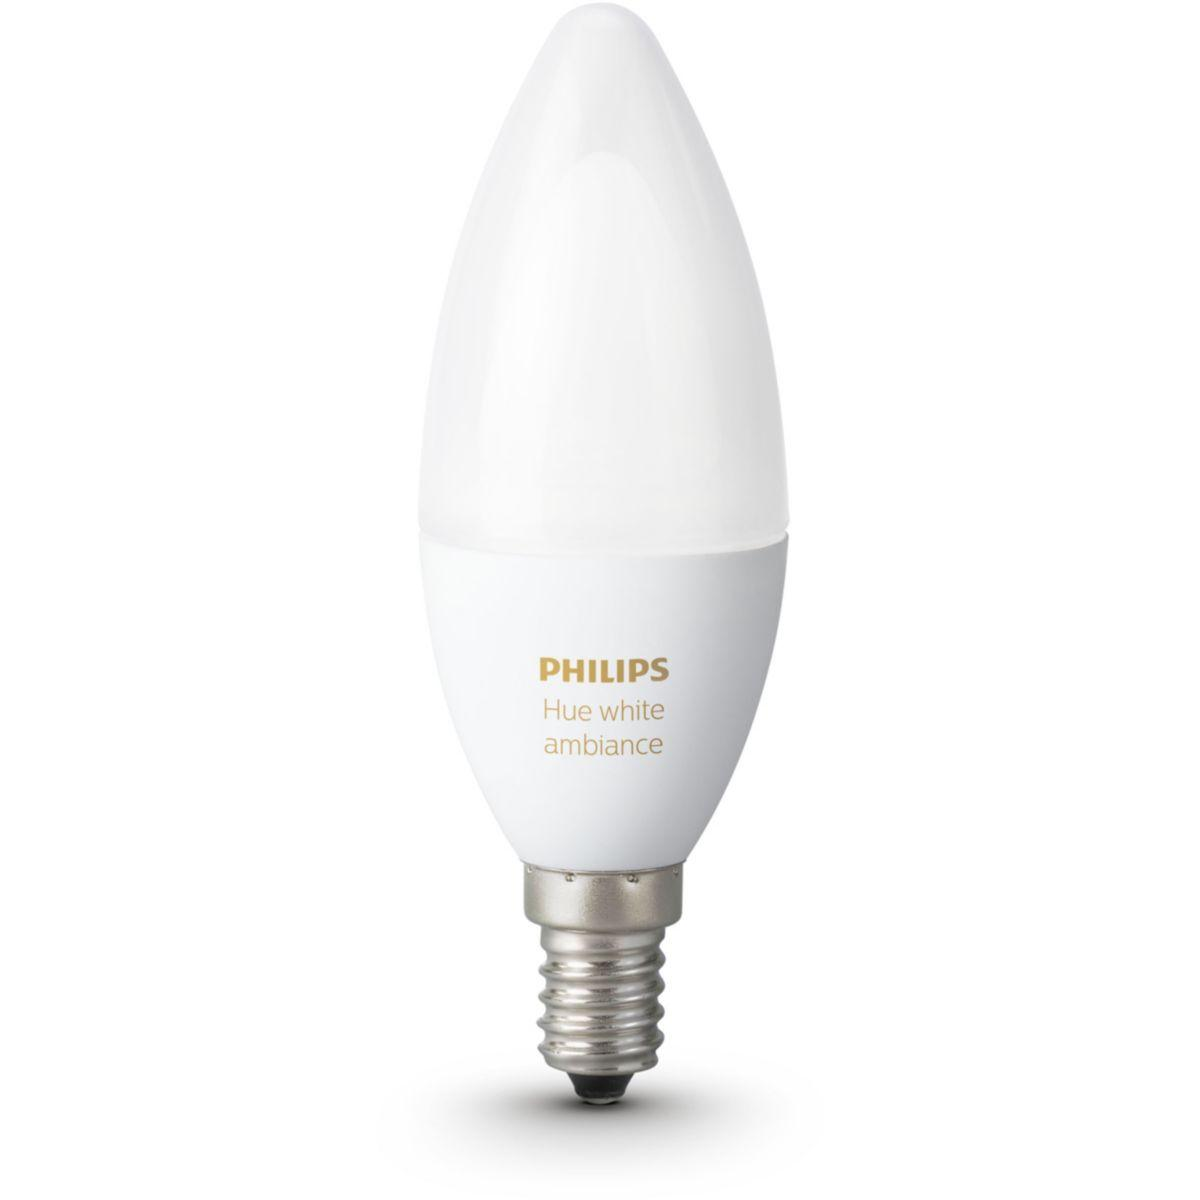 Ampoule connectable philips hue white & ambiance flamme e14 (photo)